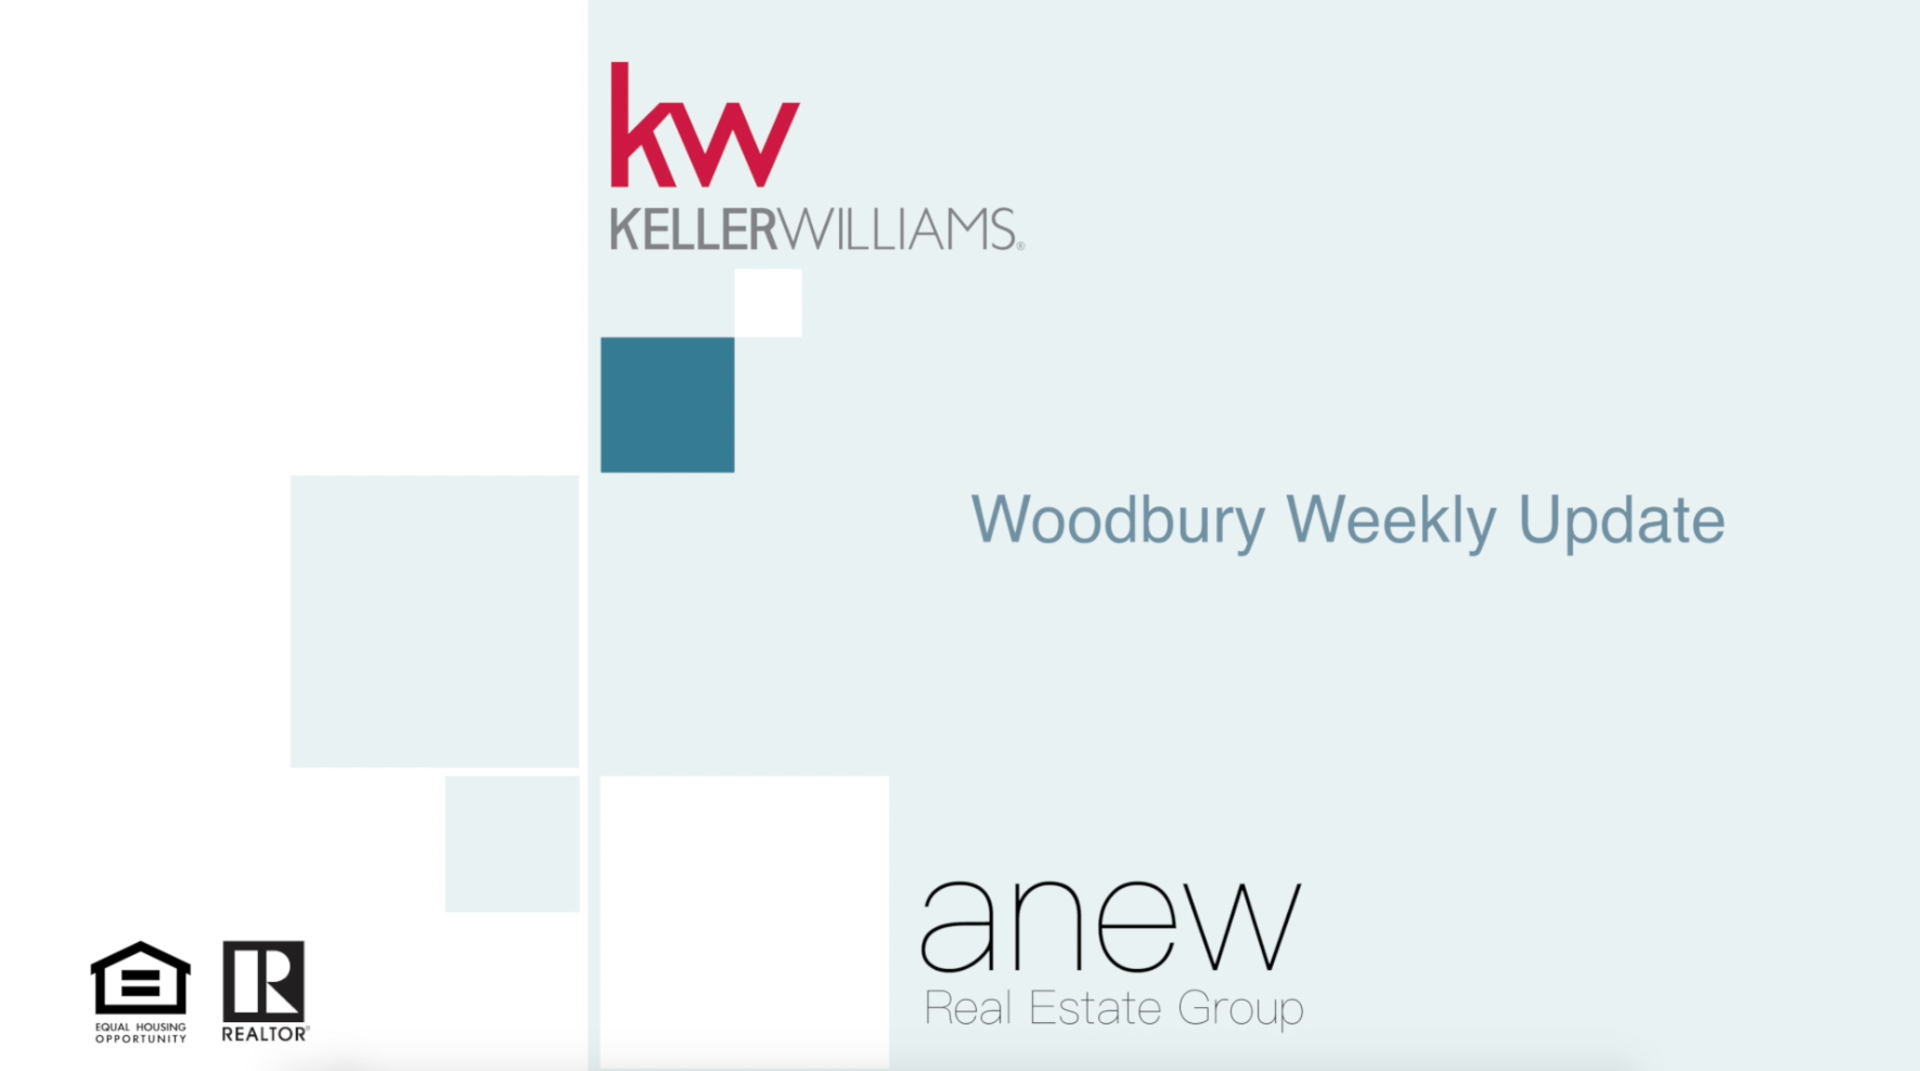 Woodbury Weekly Update for June 25th